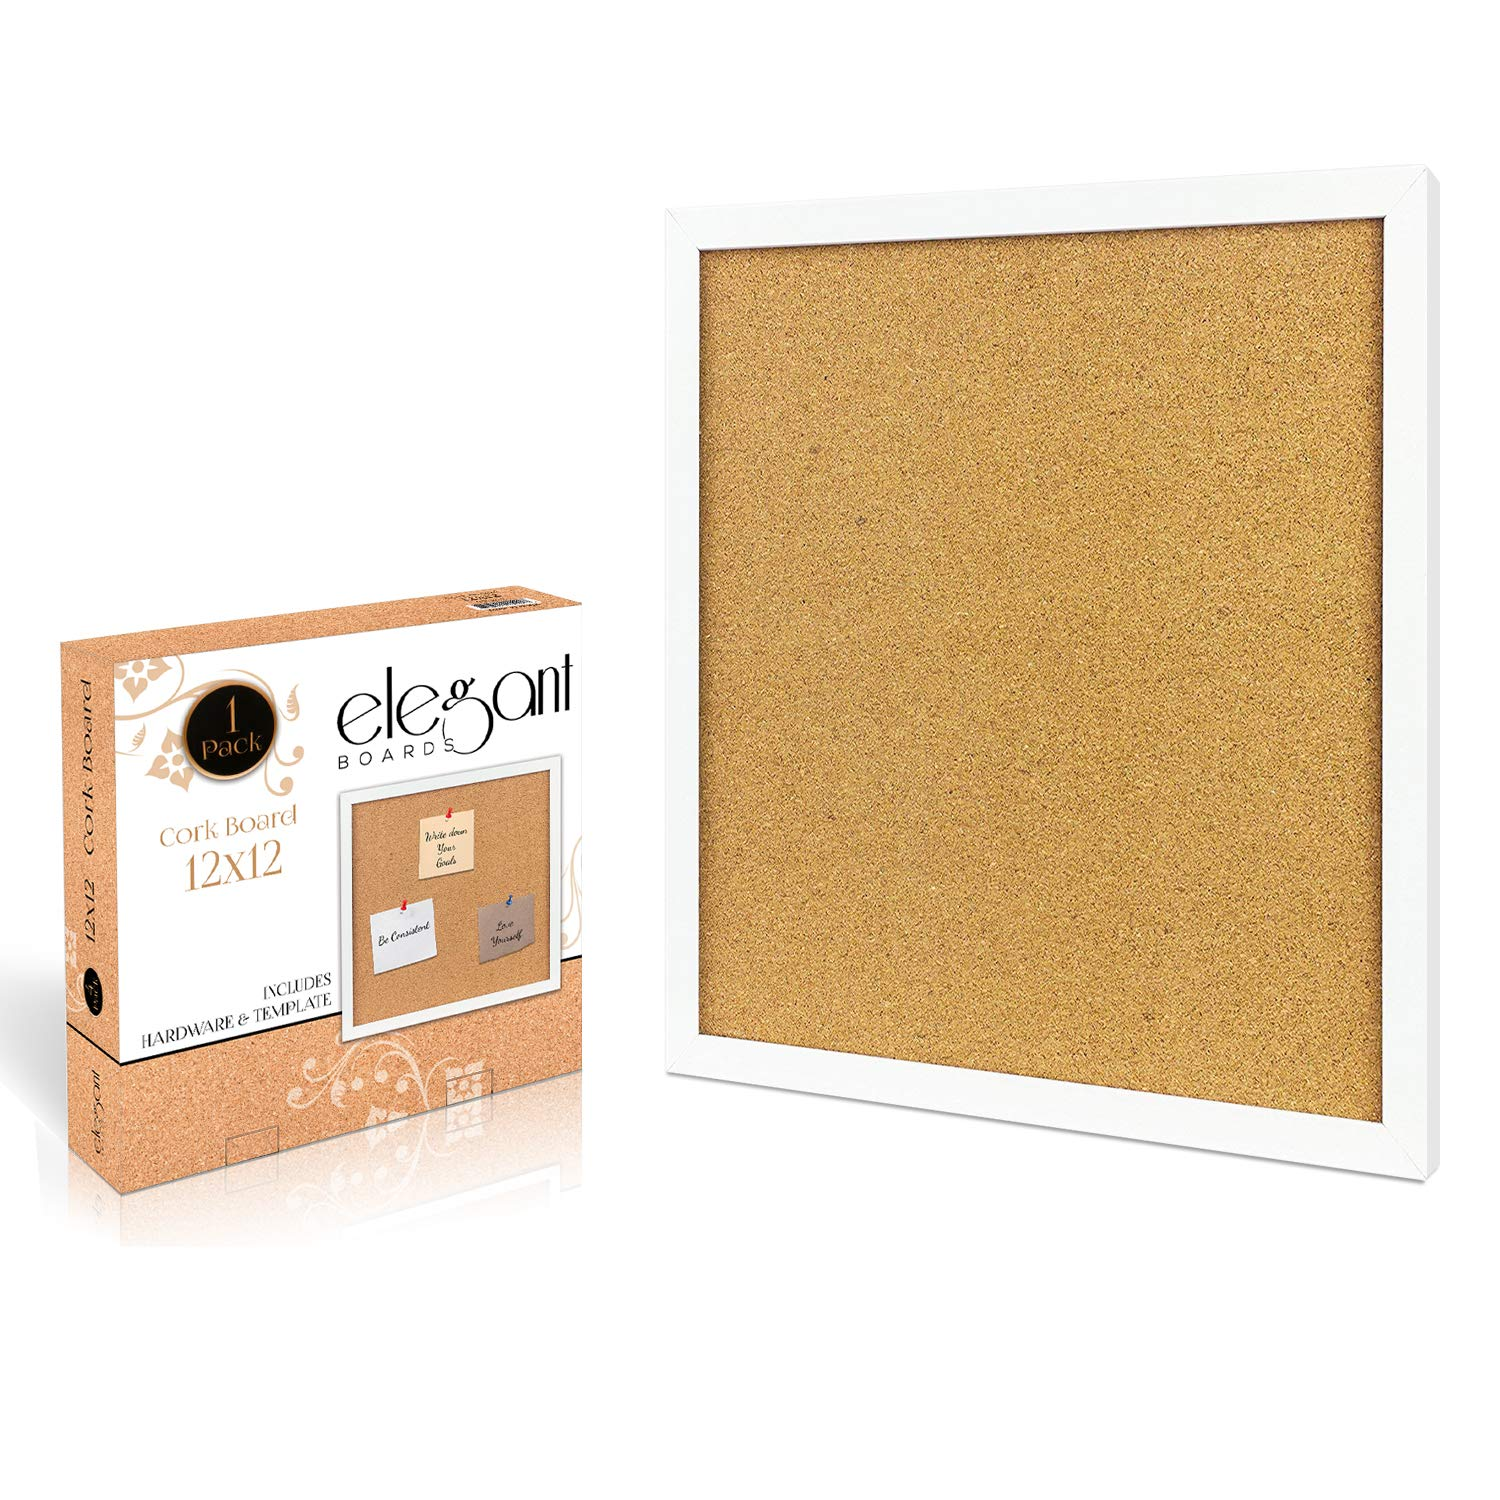 4 Pack Cork Bulletin Board 12X 12 Square Wall Tiles, Modern White Framed Boards for Home and Office (Hardware and Template Included) Elegant Boards